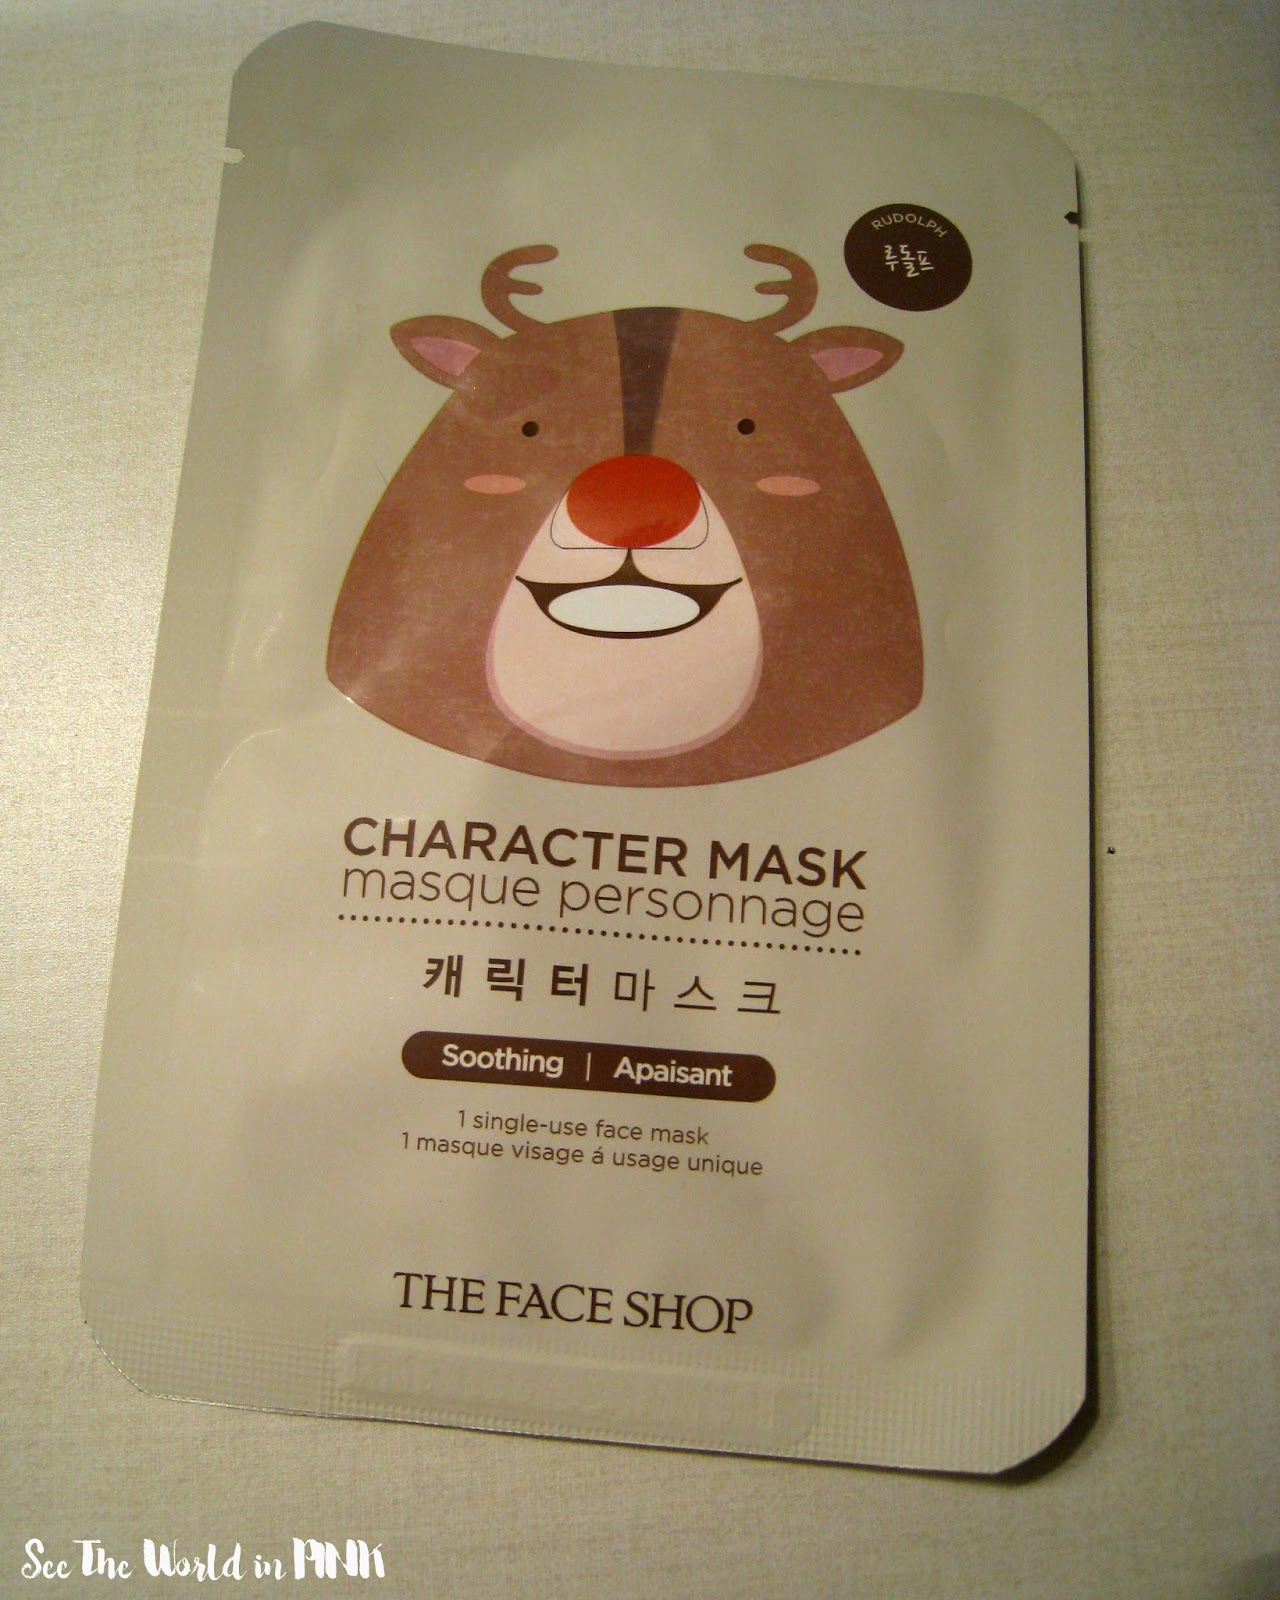 THEFACESHOP鲁道夫角色面具